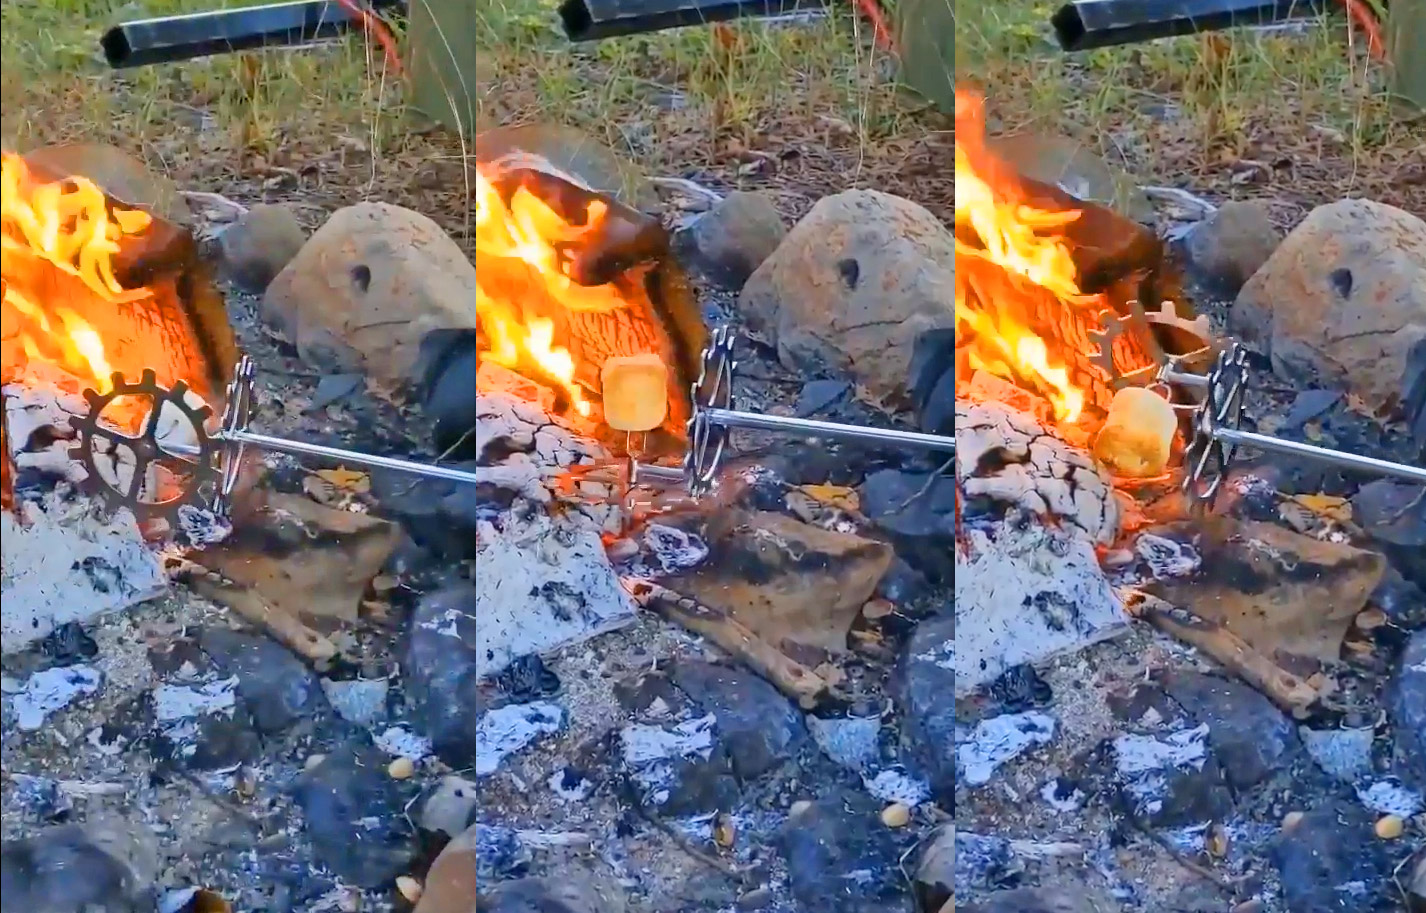 Gyroaster Turns Your Marshmallow on 2-Axis Rotation For Perfectly Toasted Mallows - Marshmallow rotating camping gadget